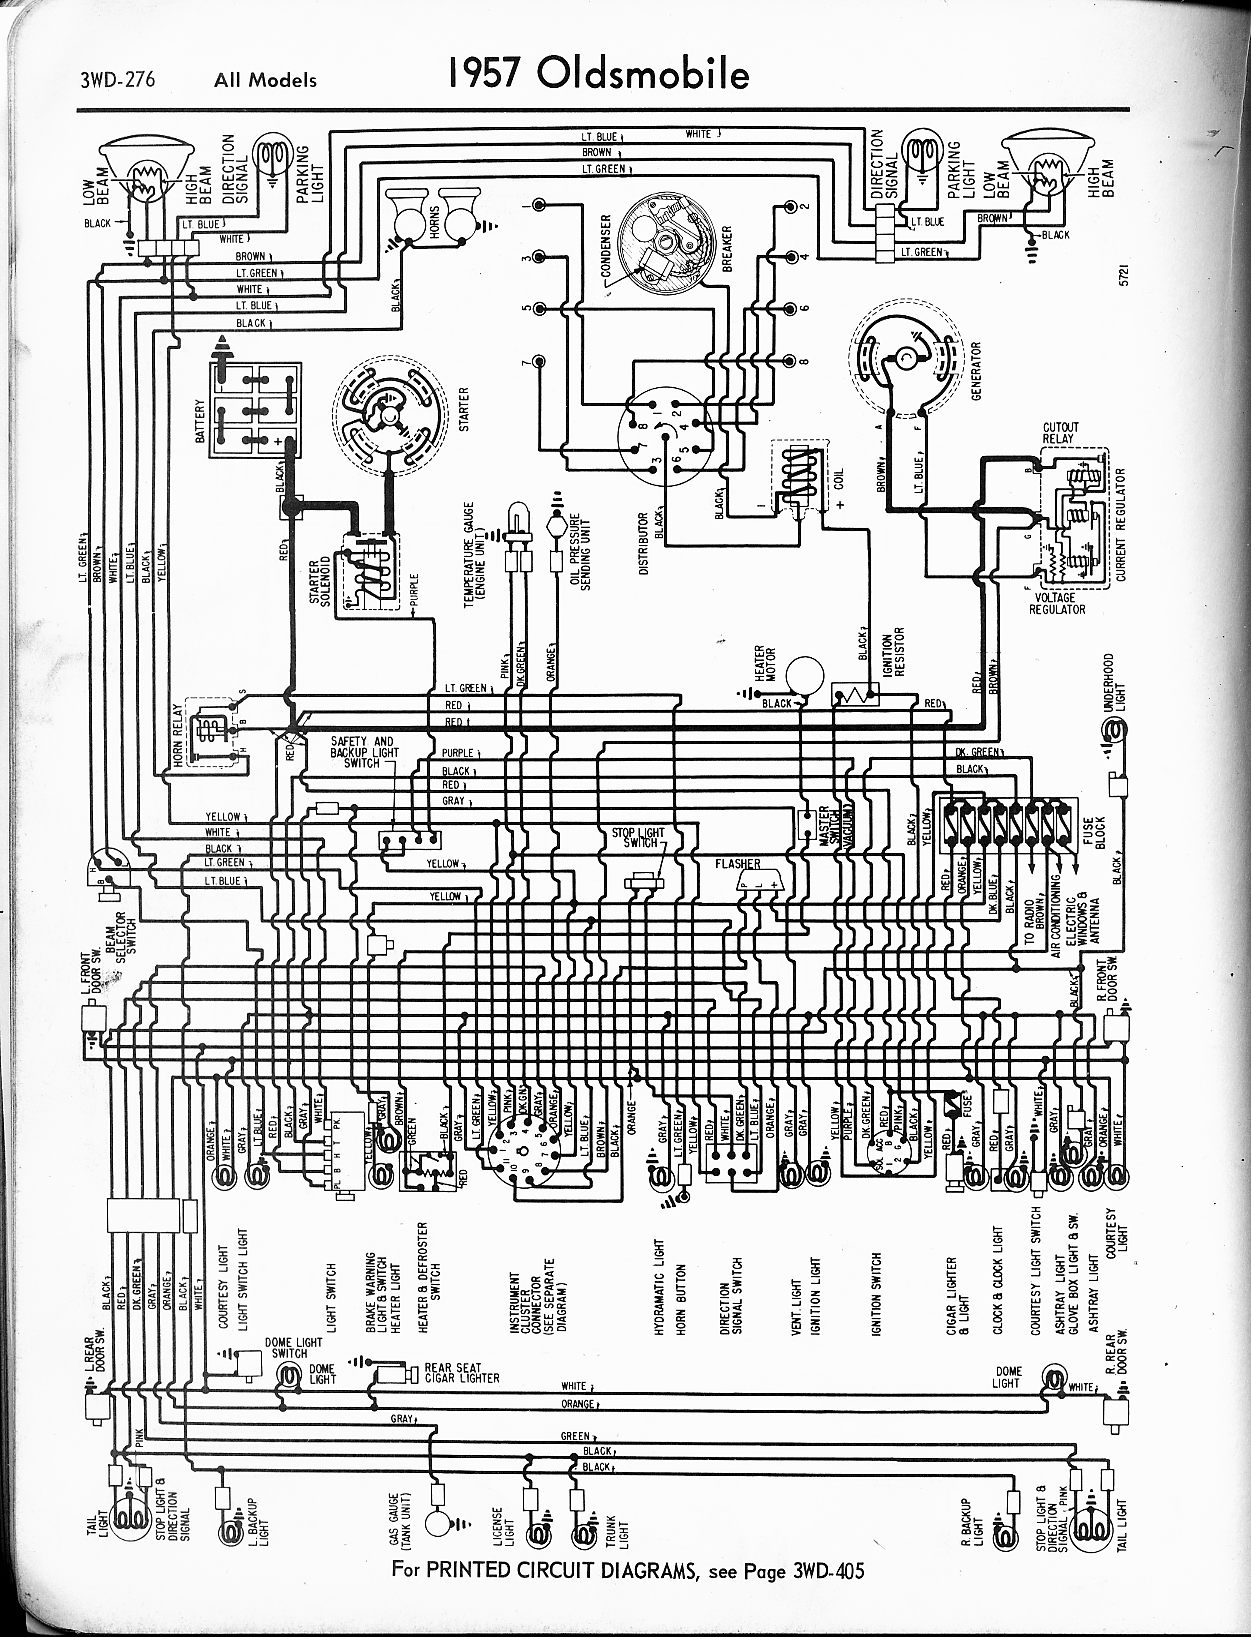 Oldsmobile Wiring Diagrams The Old Car Manual Project 1965 Chevy Wiring  Diagram 1965 Olds 442 Wiring Diagram